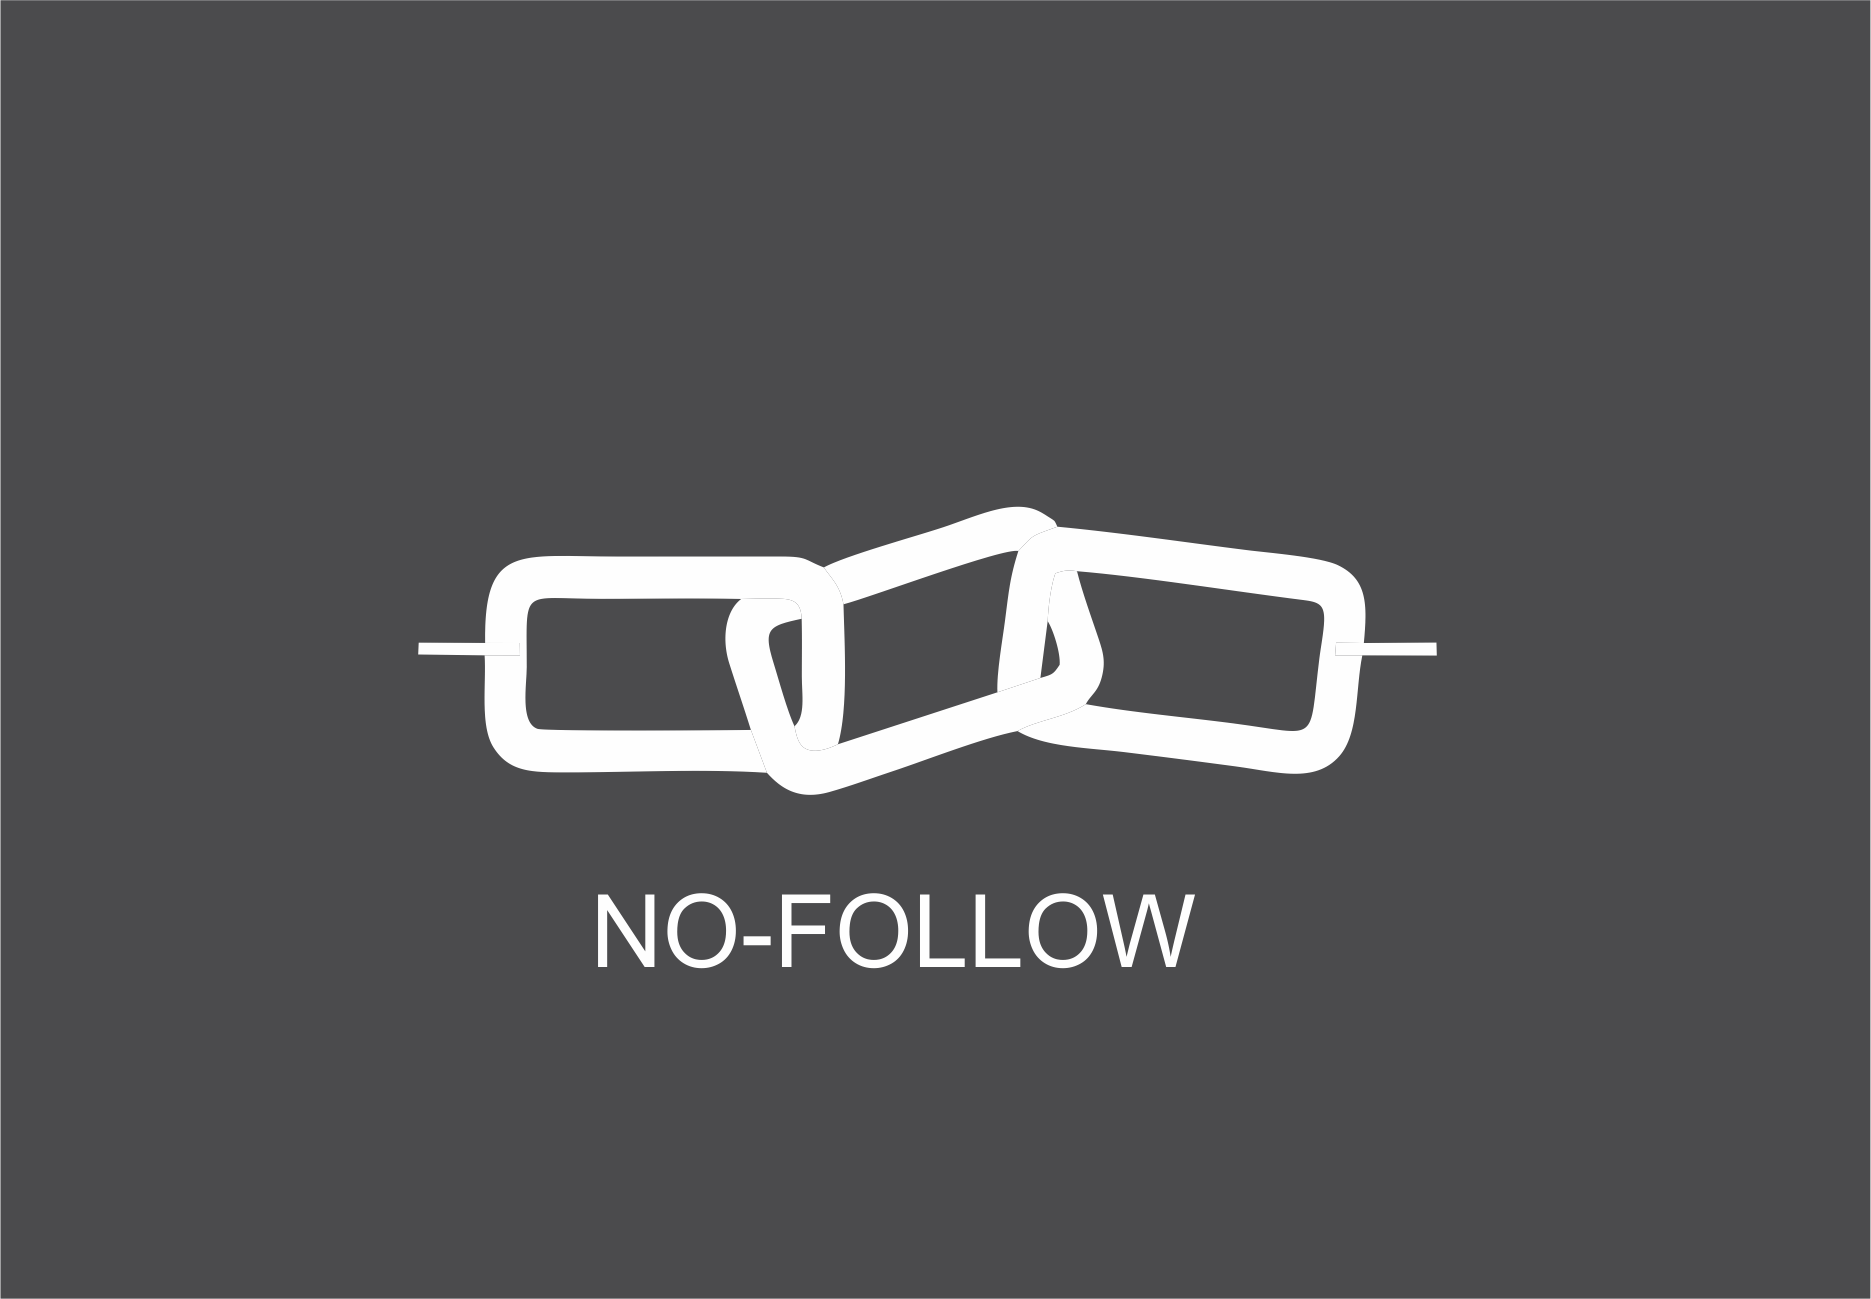 How To Use Nofollow Attribute In Seo